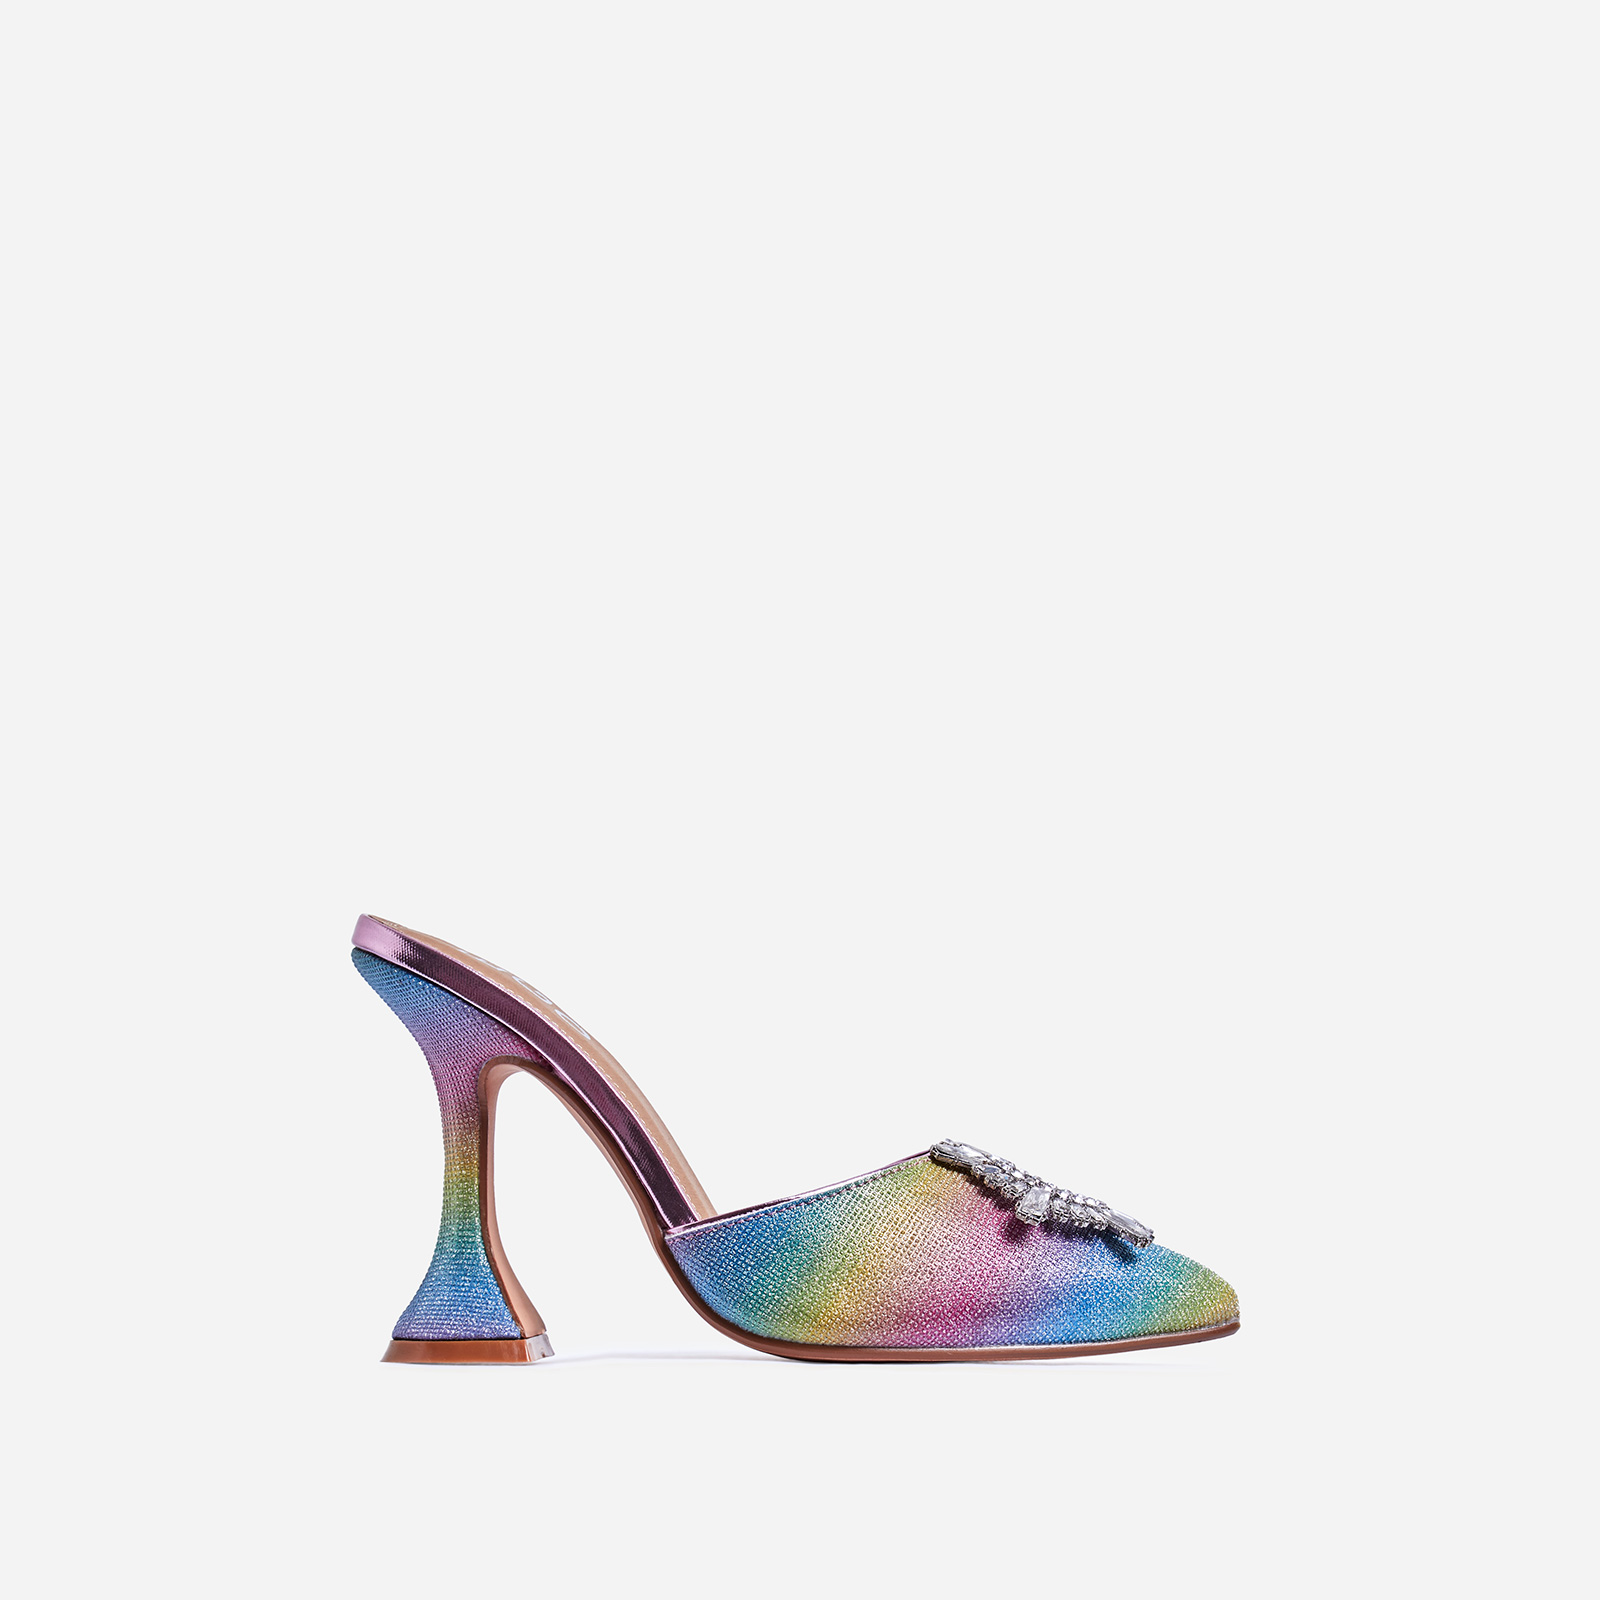 Moonlight Diamante Detail Pyramid Heel Mule In Rainbow Print Glitter